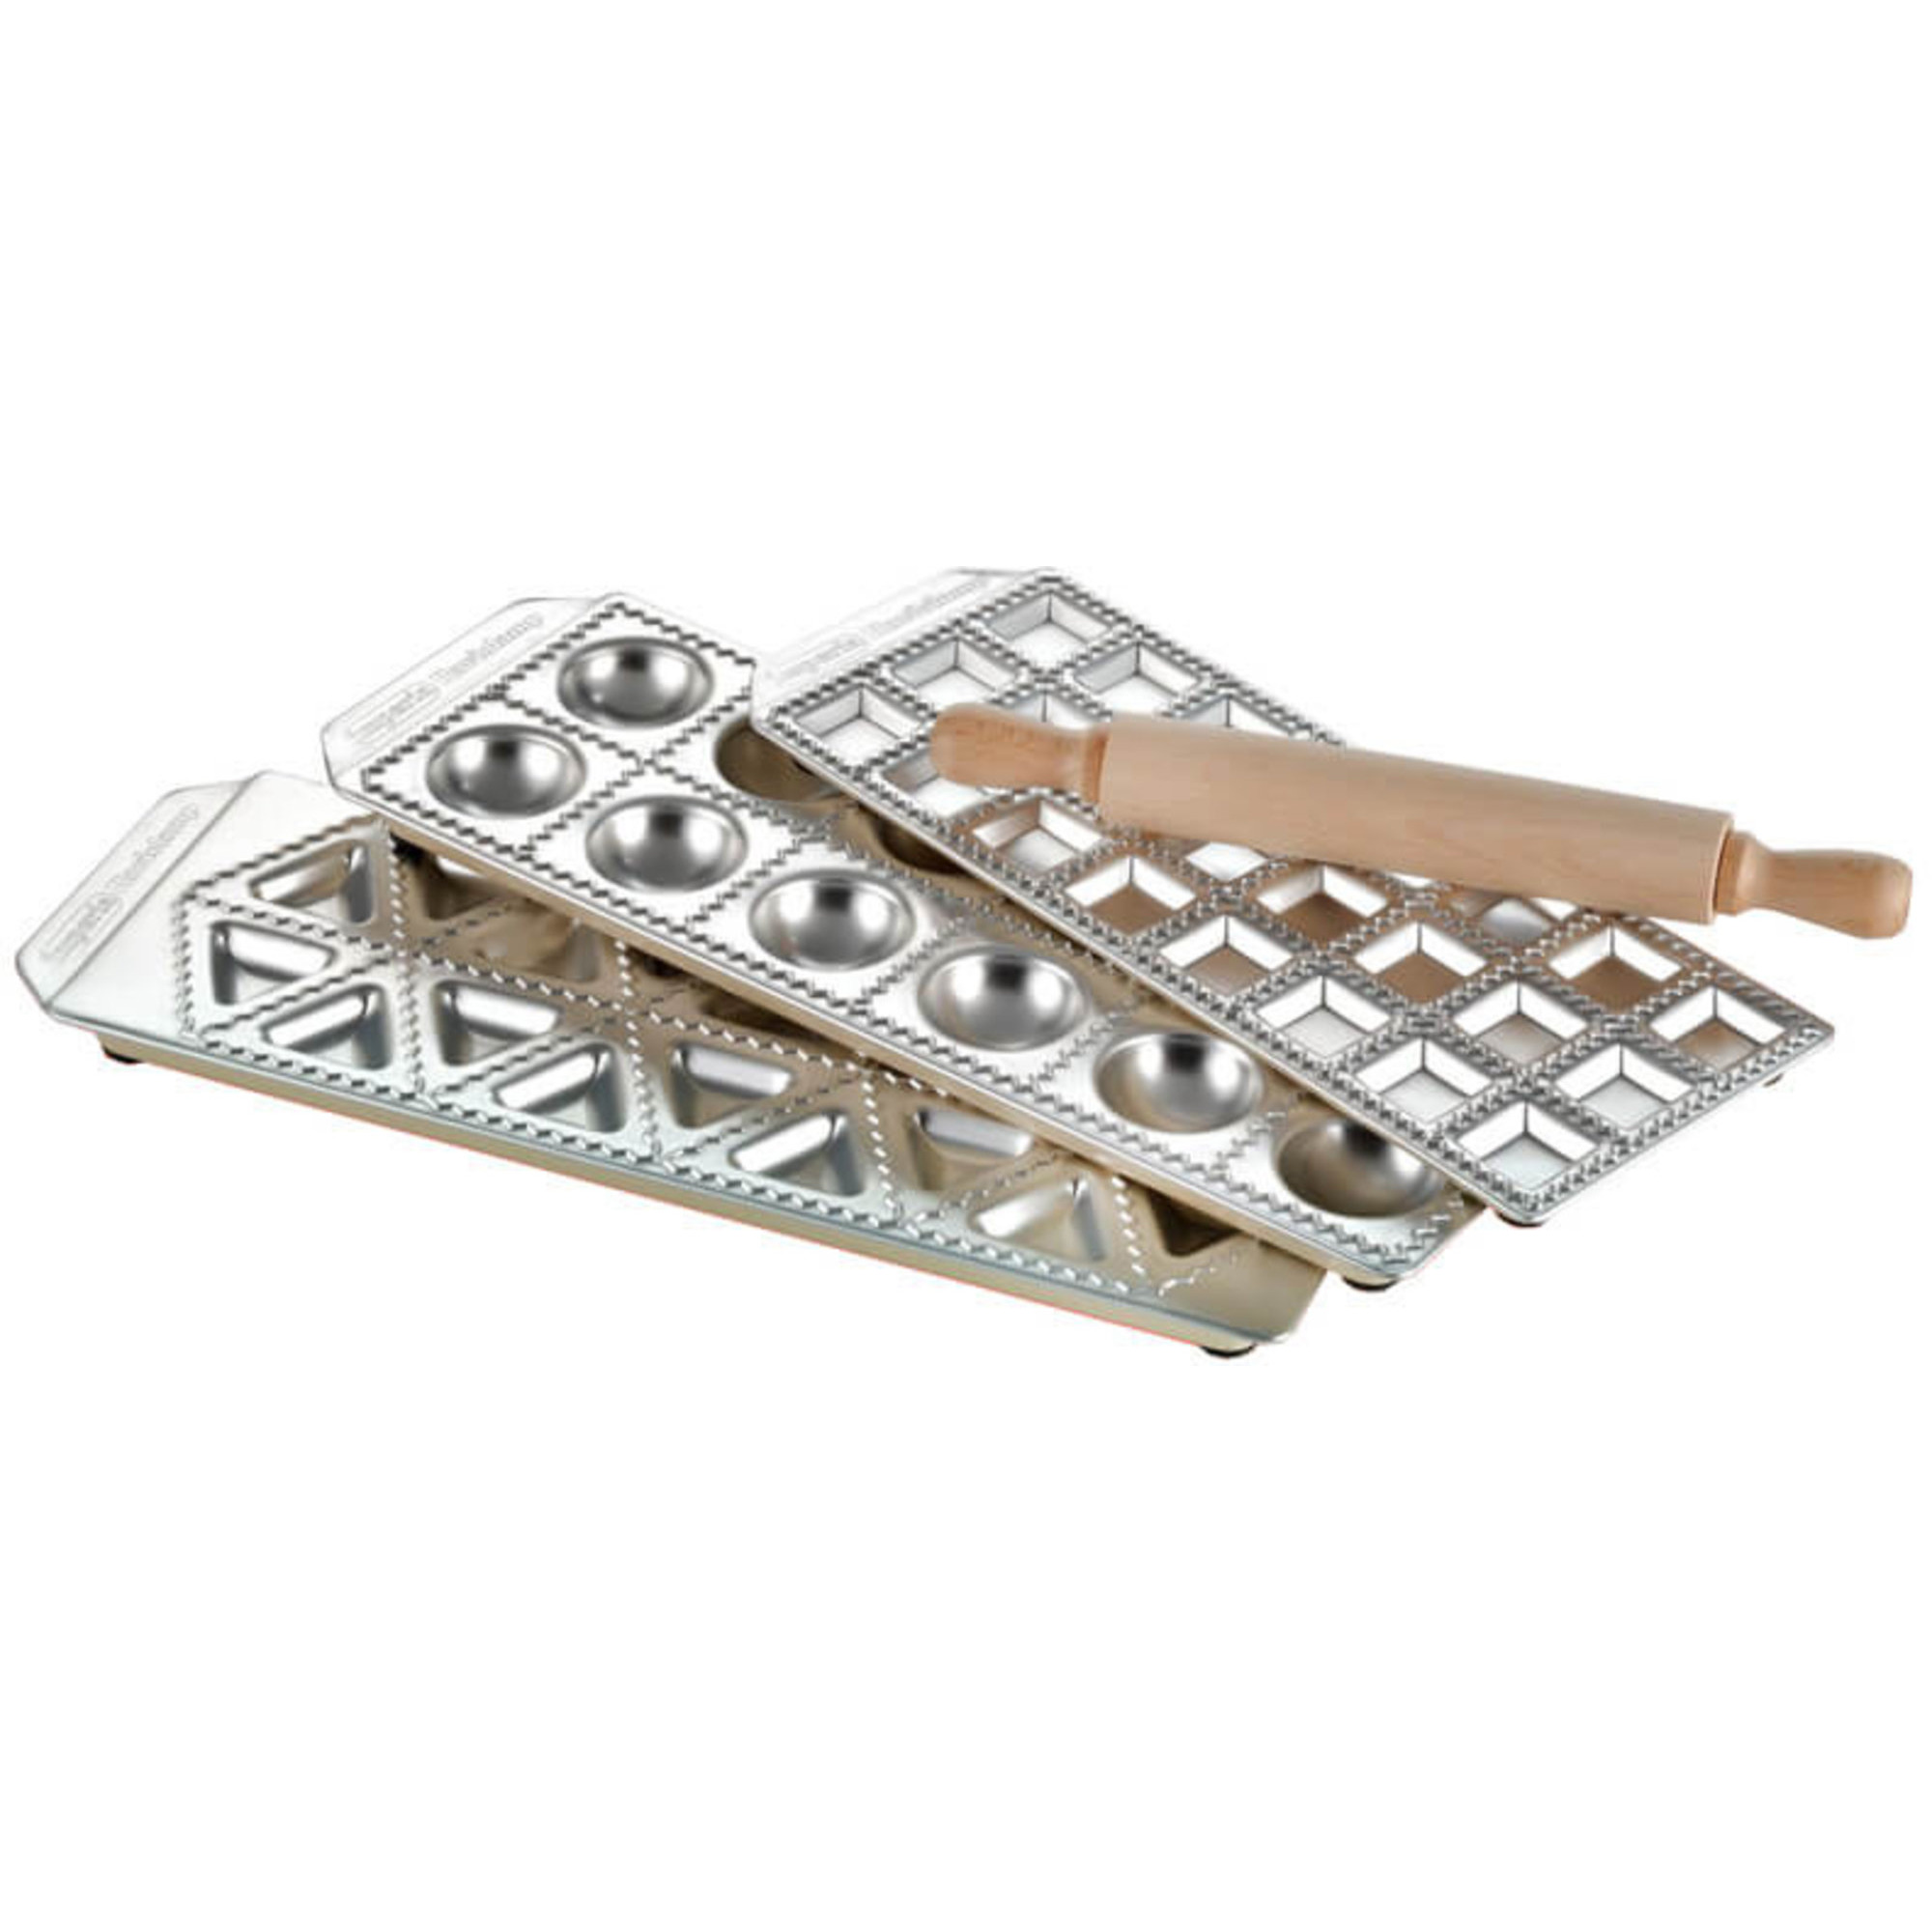 Imperia Raviolamp Set 3-pack